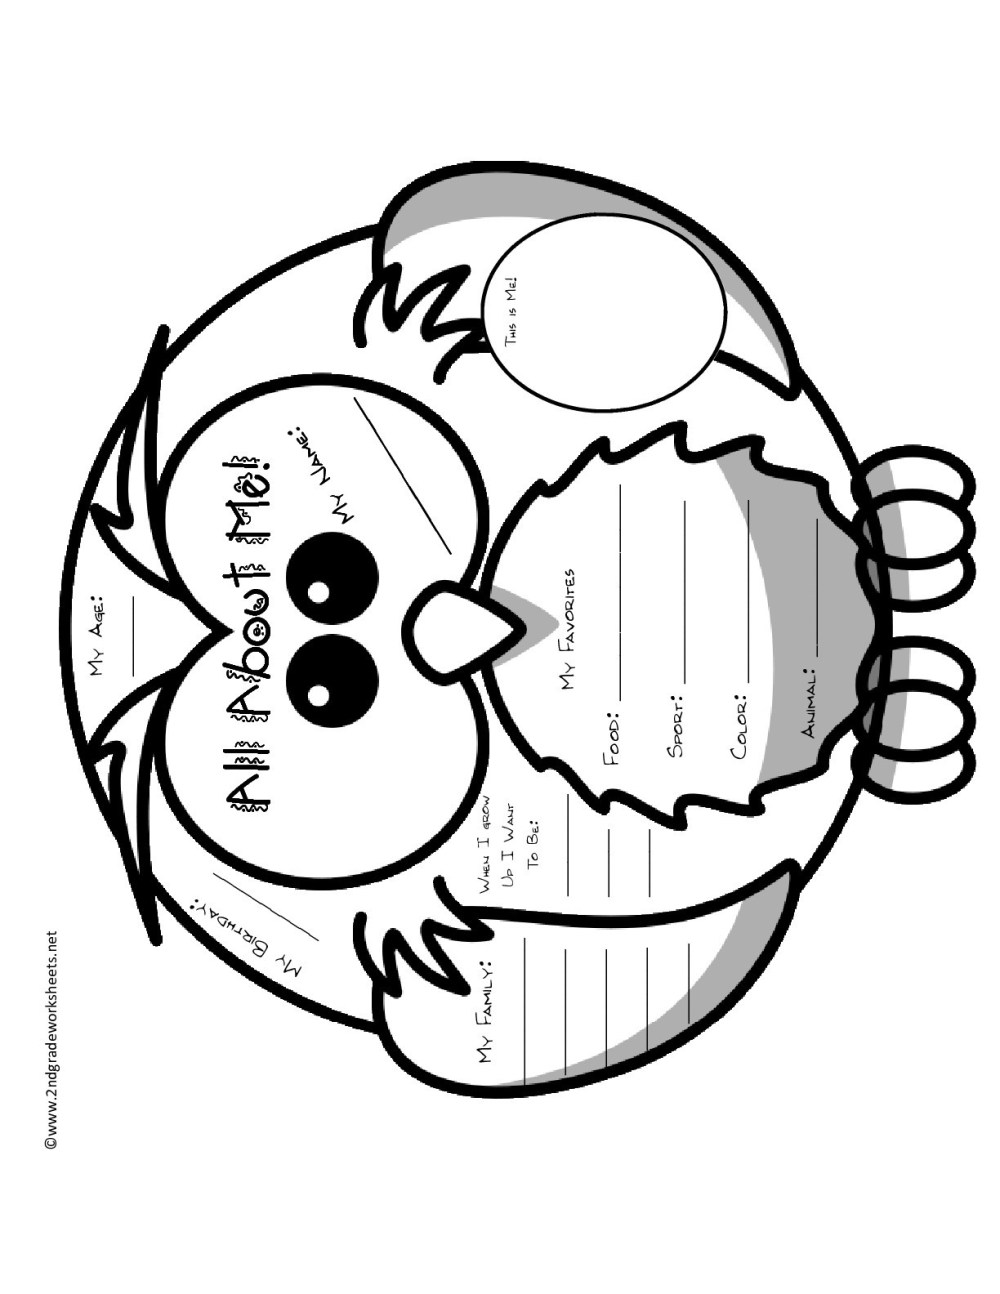 medium resolution of 5 Animals Worksheets for Grade 1 - apocalomegaproductions.com